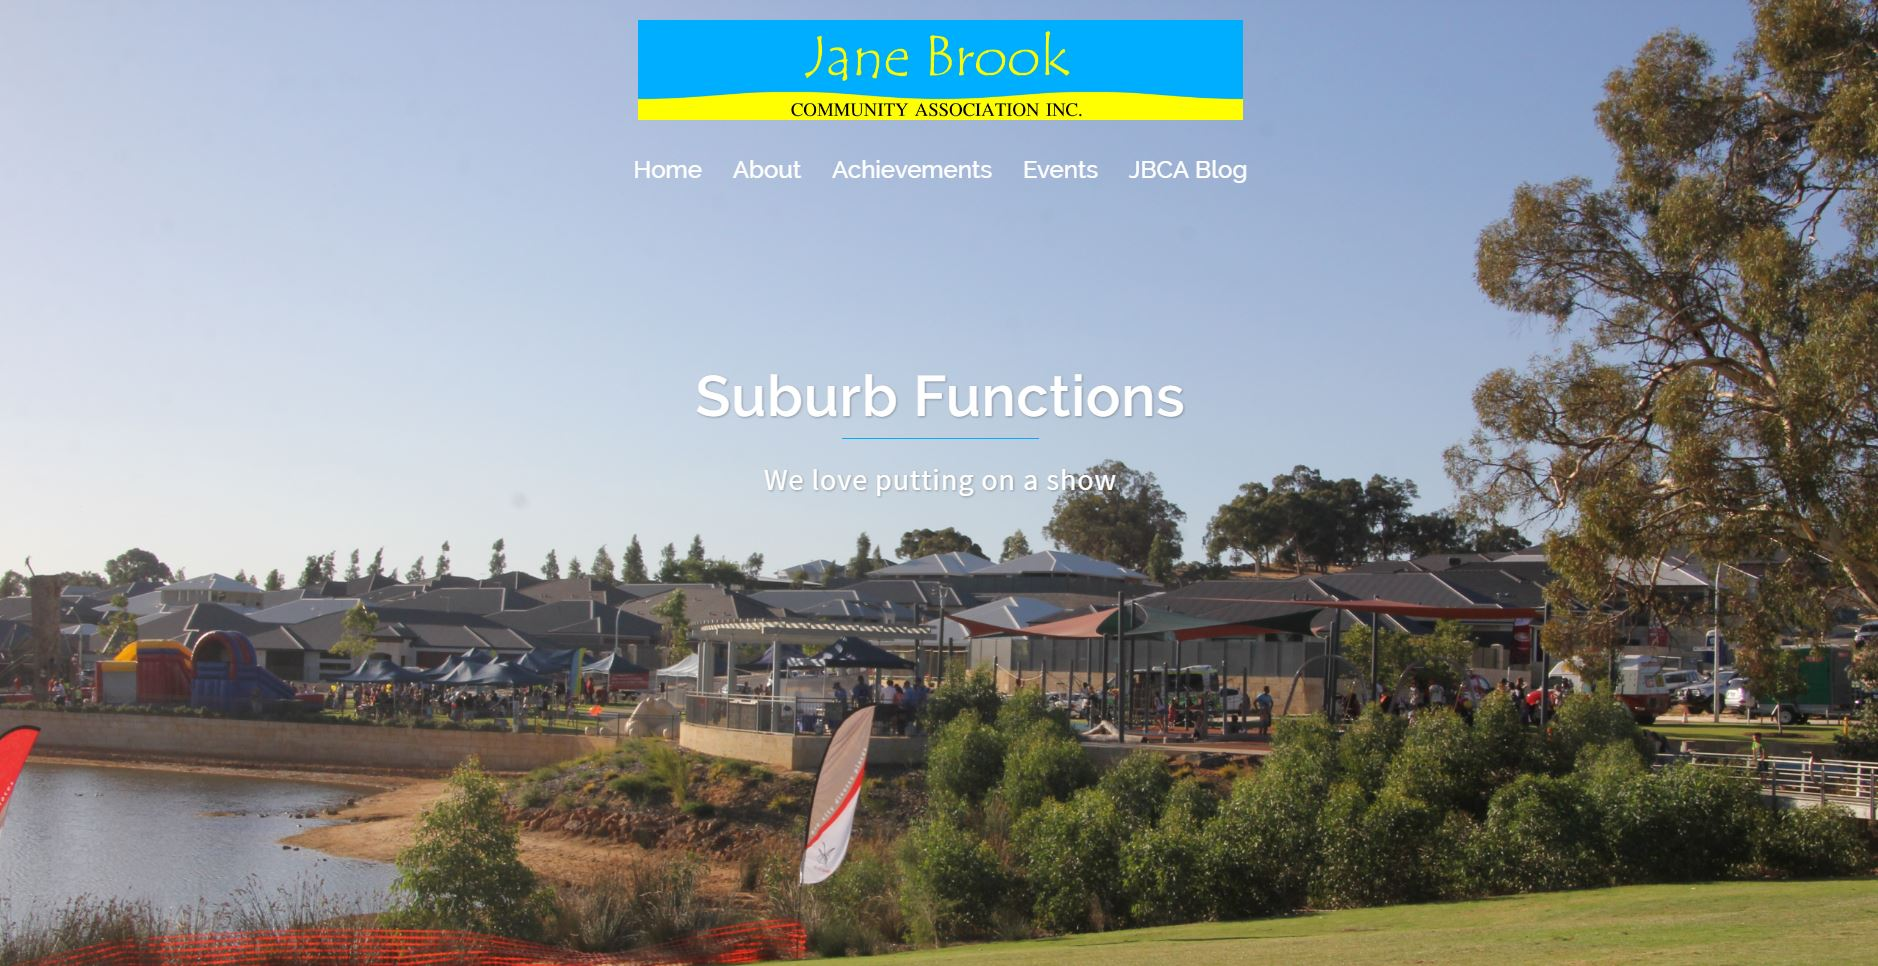 Jane Brook Community Association